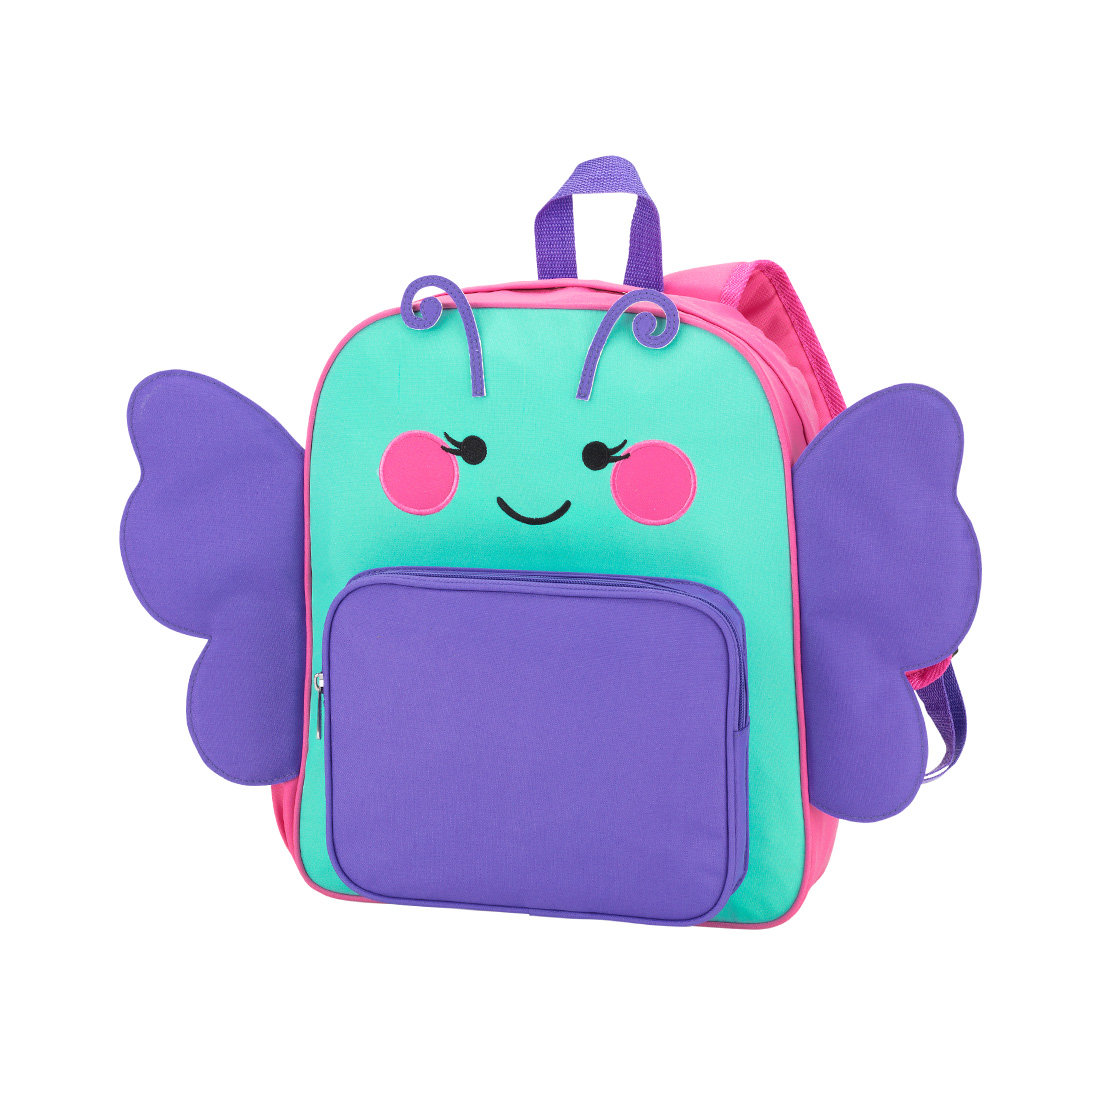 Personalized Backpacks for Toddlers   Toddler Preschool Backpacks